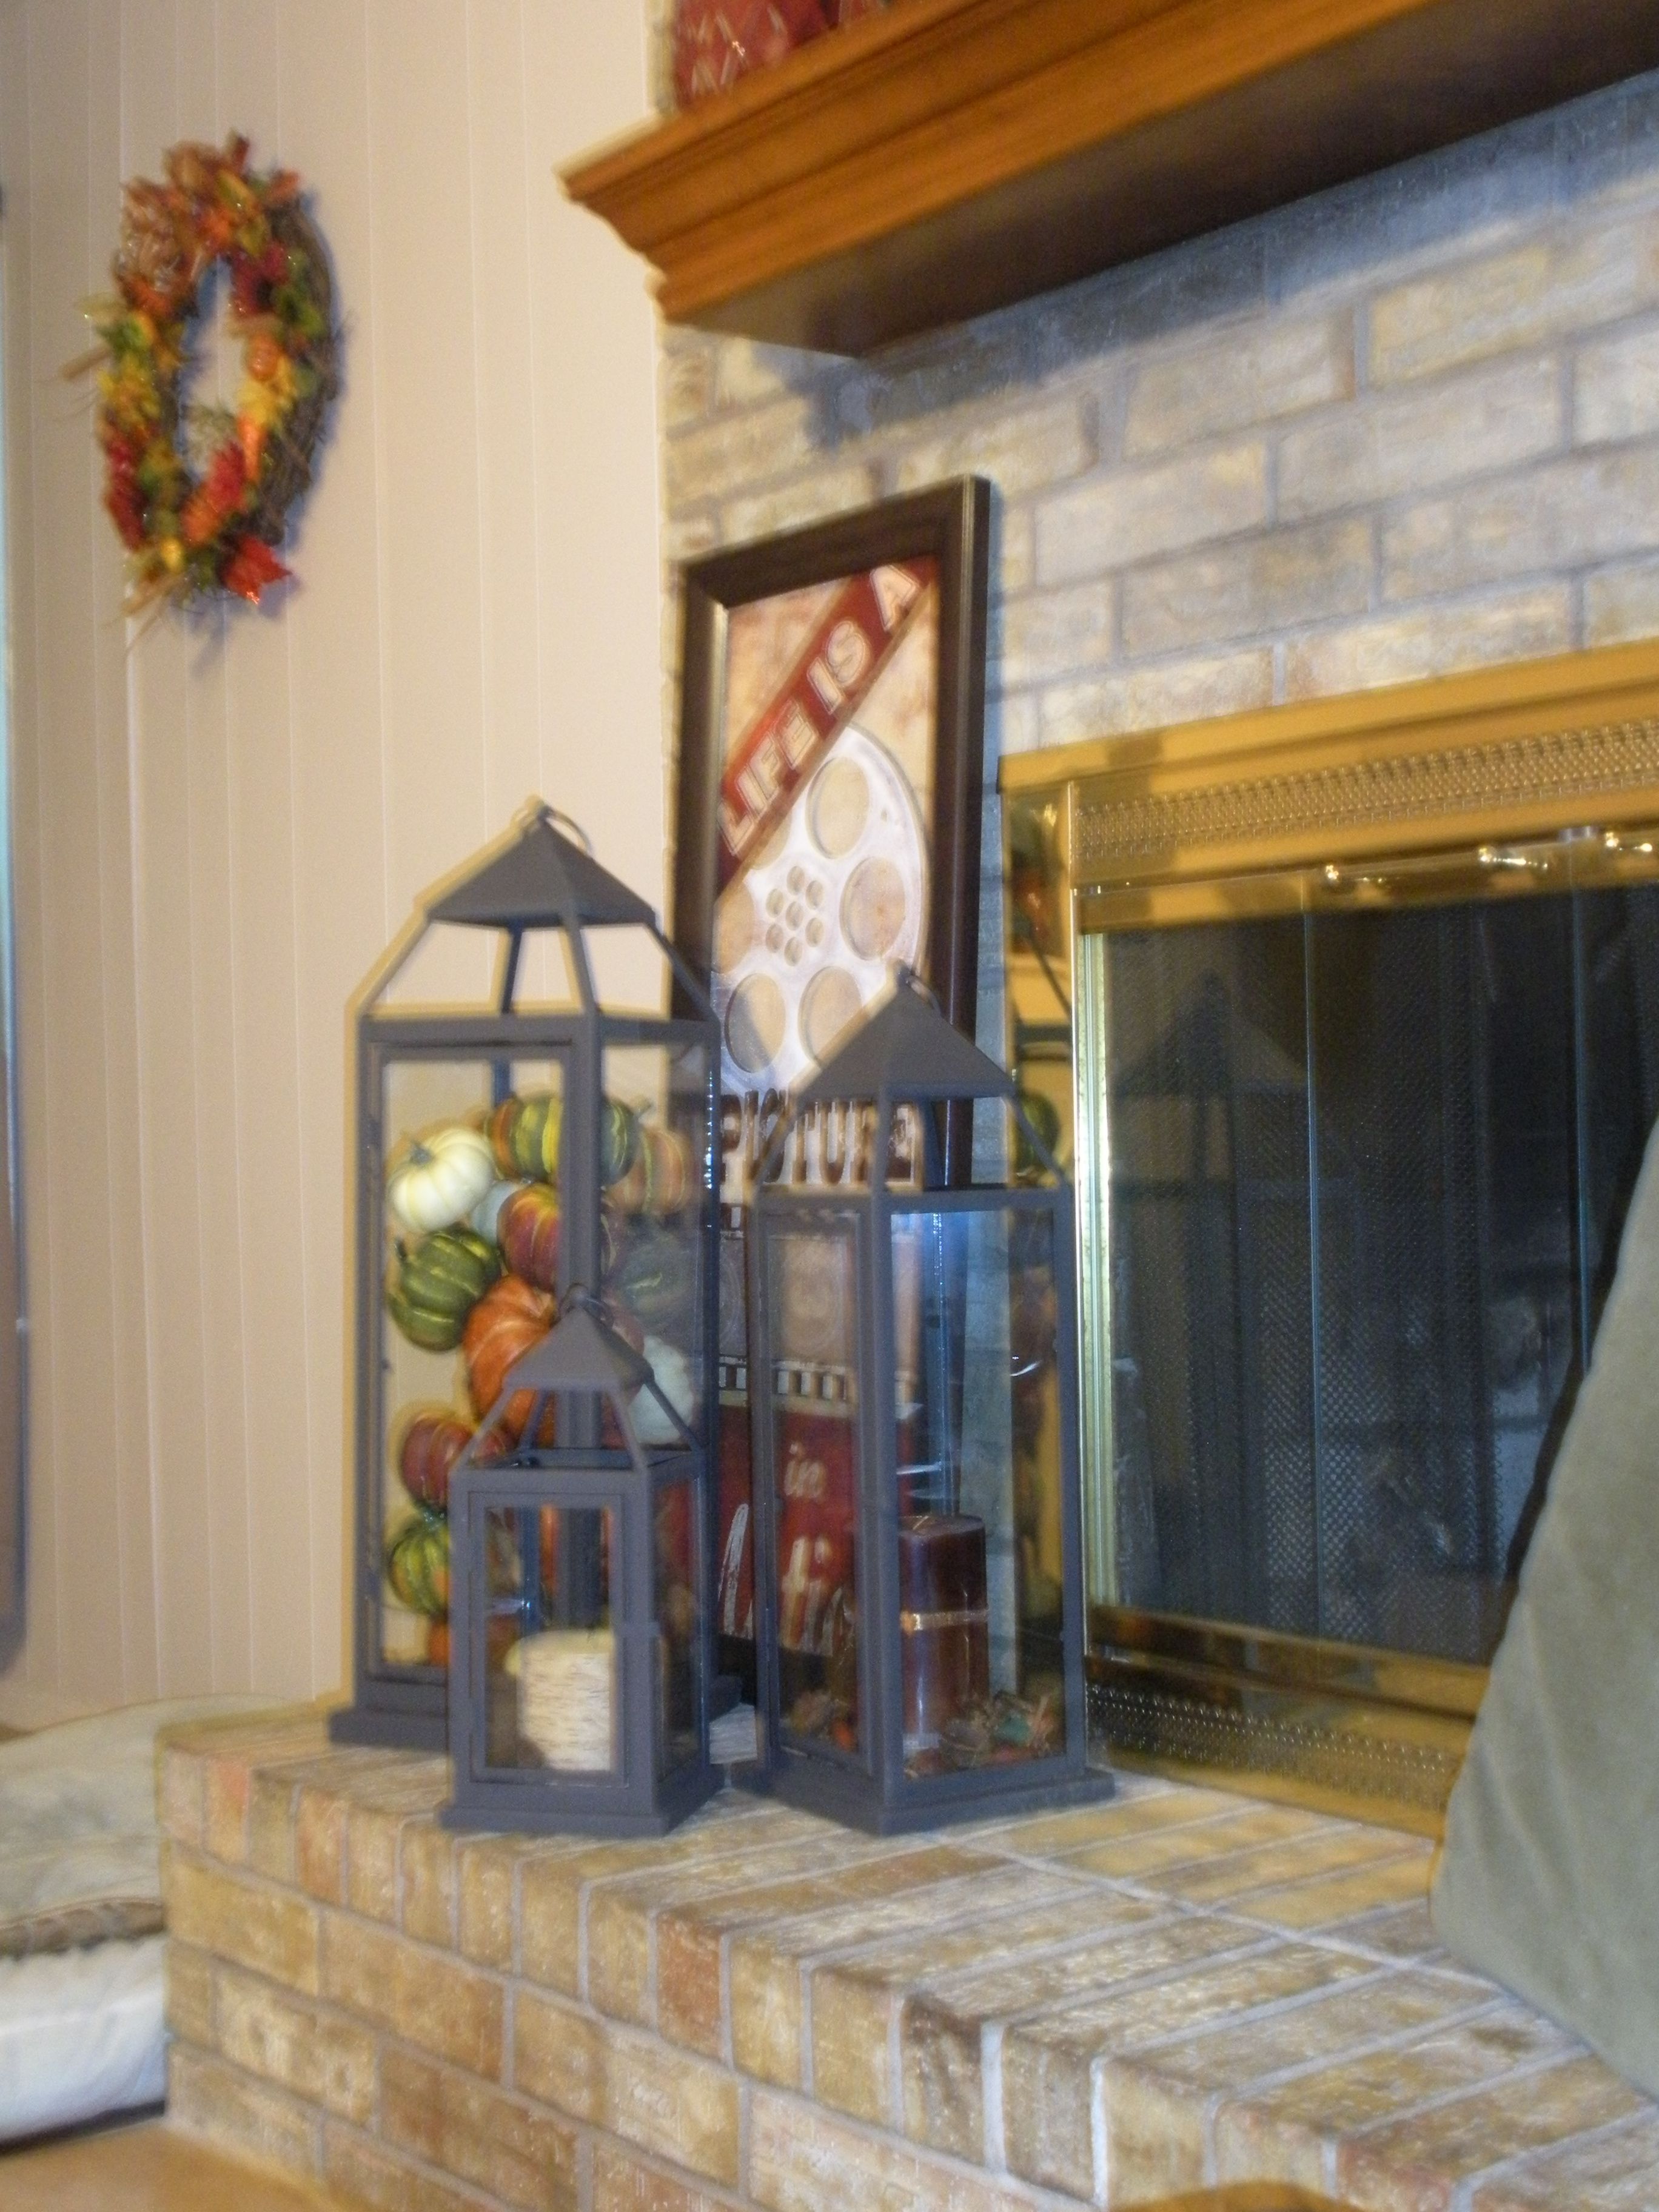 pier one fireplace decor on pier 1 lanterns i love these lanterns i also put mine by my fireplace with a candle that has a remote control also sold at pier fall decor lanterns fall fun fall decor lanterns